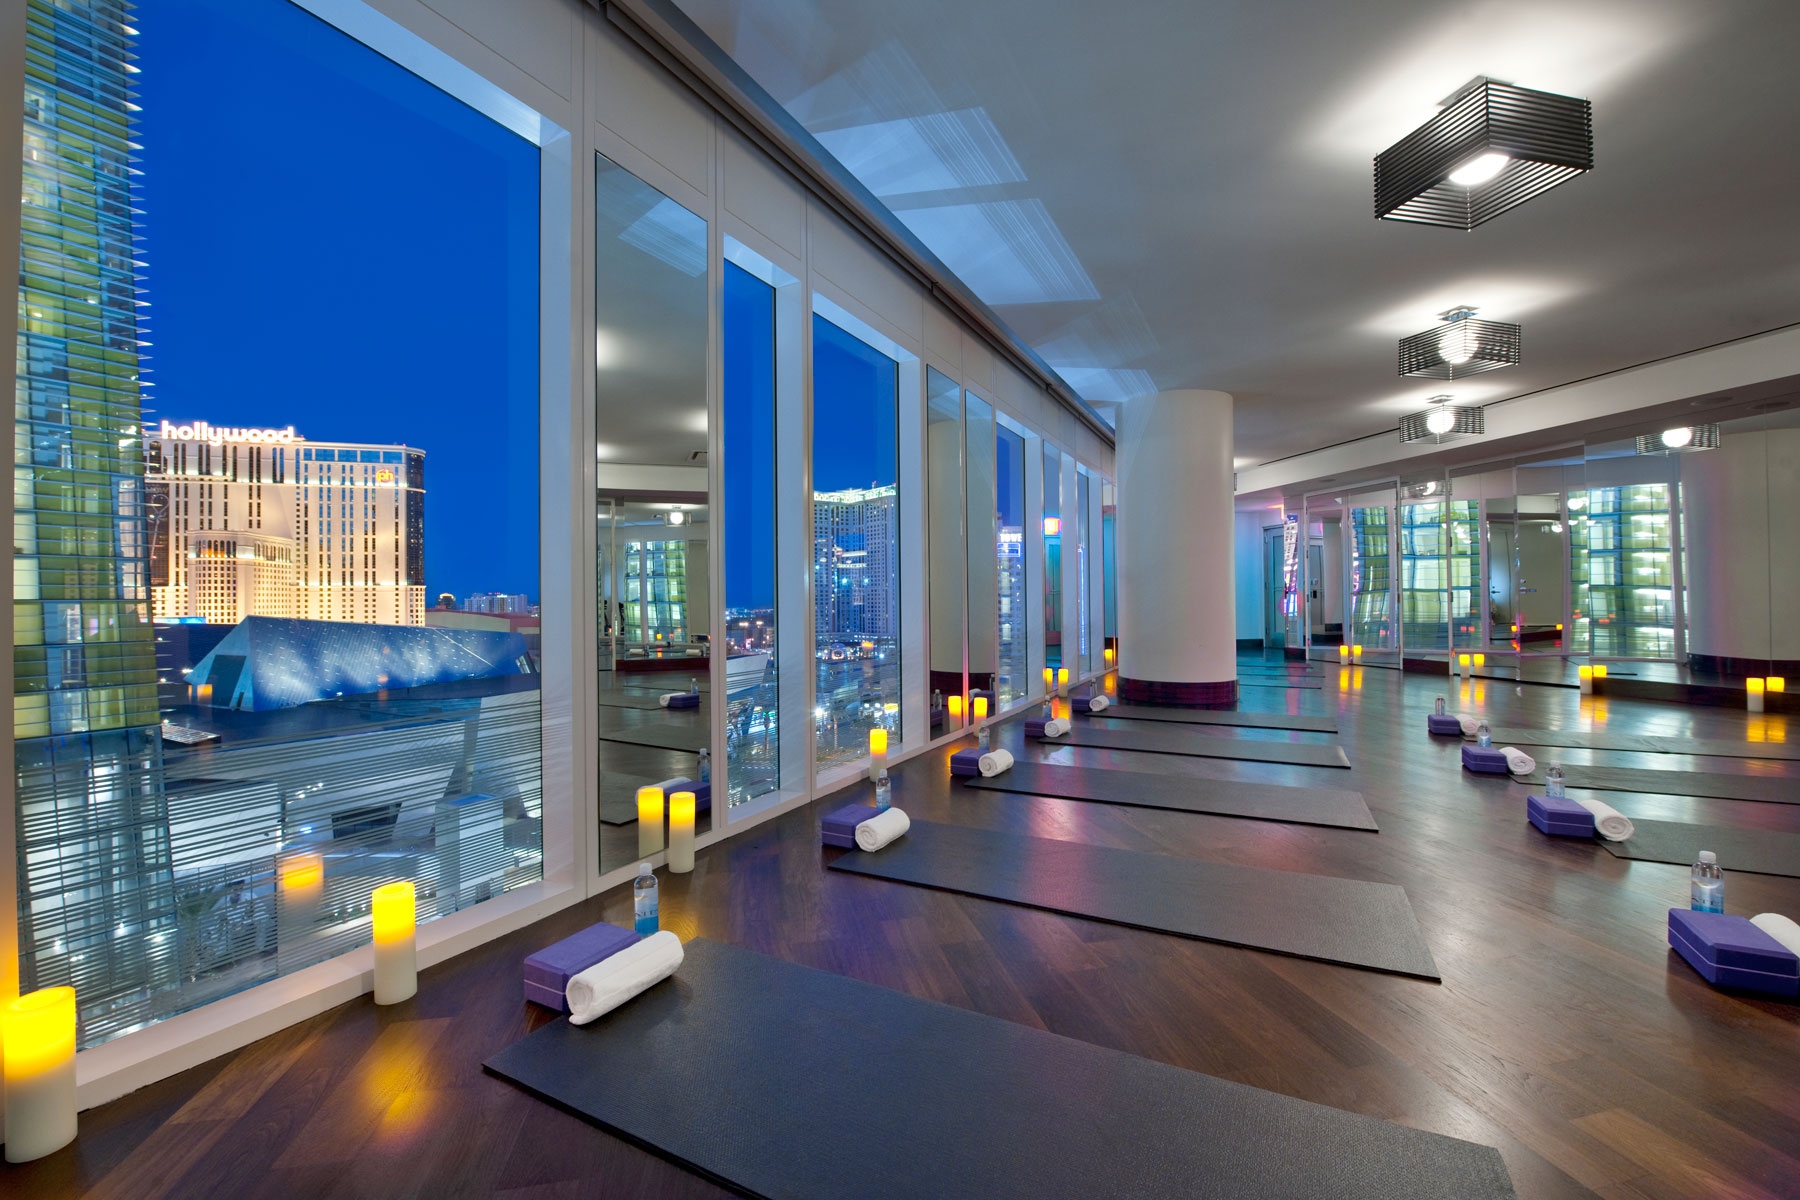 Mandarin Oriental Fitness And Wellness Center